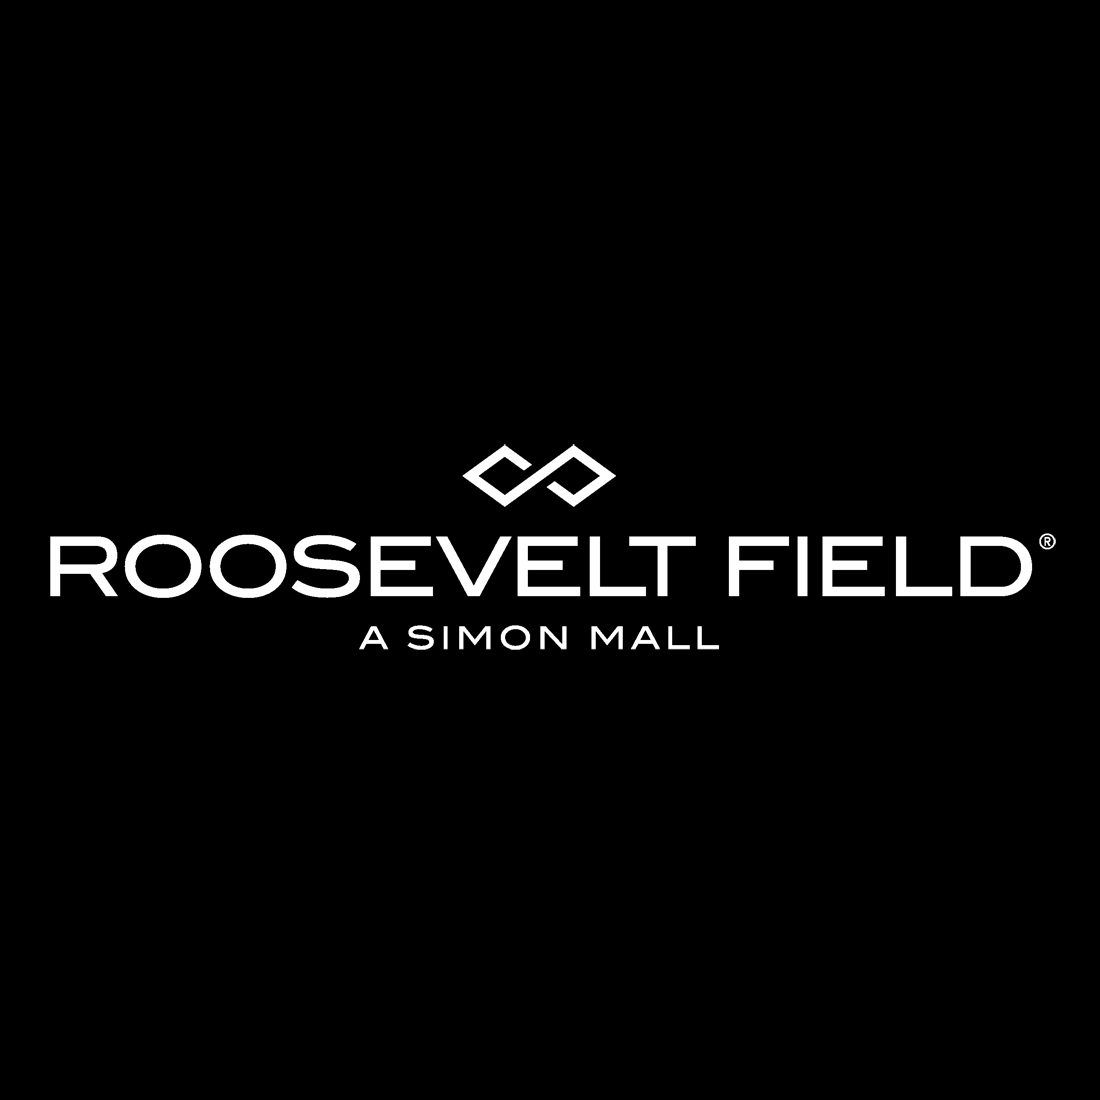 Roosevelt Field 630 Old Country Rd Garden City Ny